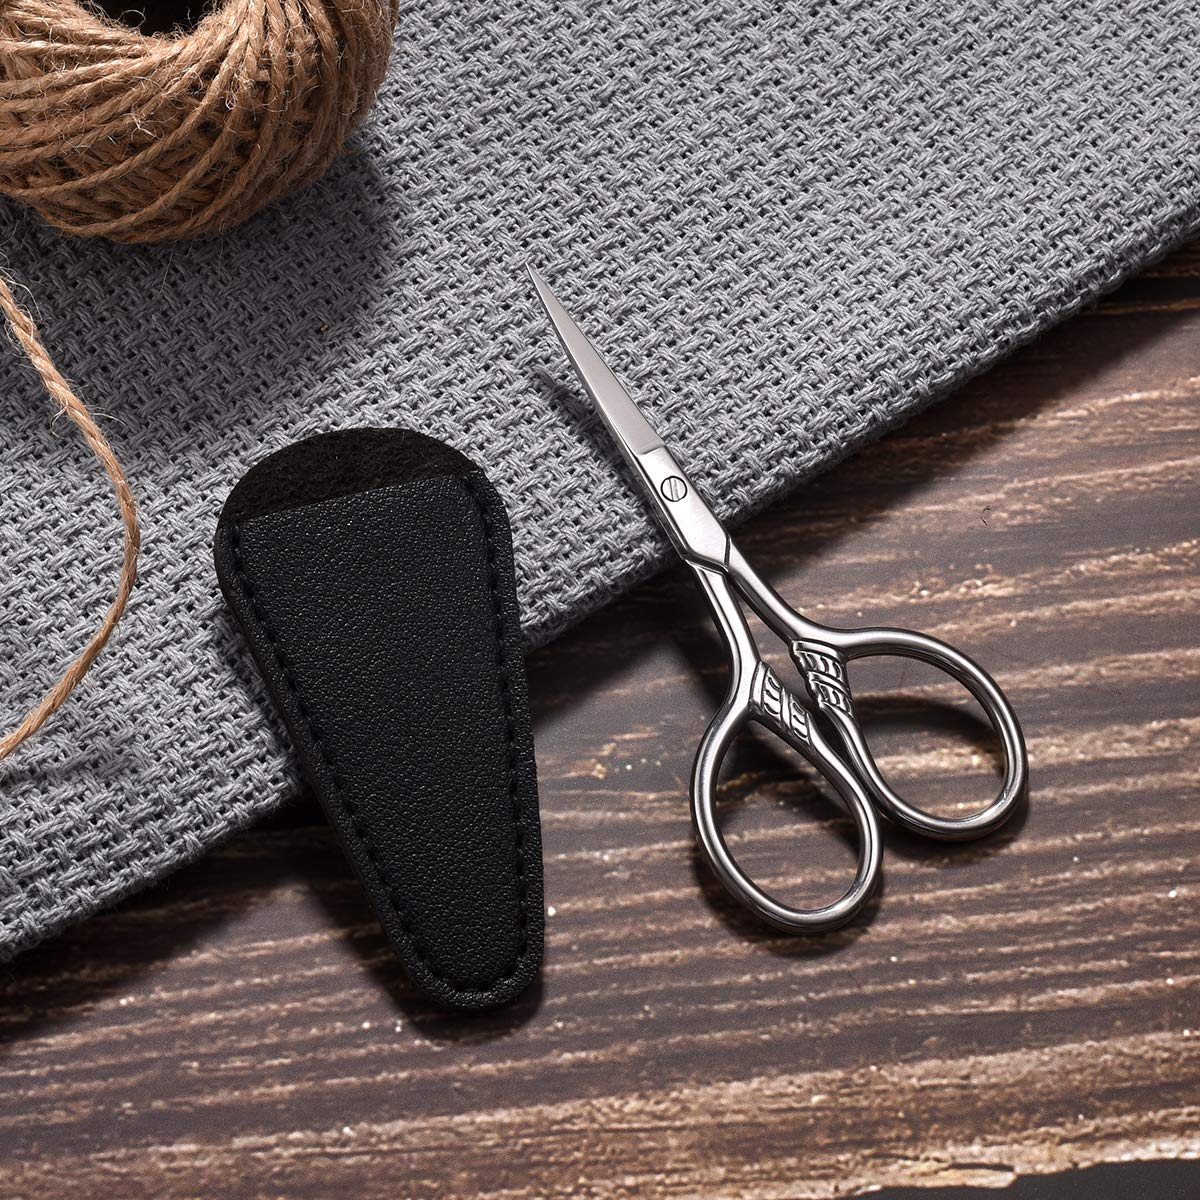 HITOPTY Small Precision Scissors, 3.5inch Stainless Steel Multi-Purpose Vintage Beauty Grooming Kit for Facial Hair, Eyebrow, Eyelash, Beard, Moustache with PU Sheath : Beauty